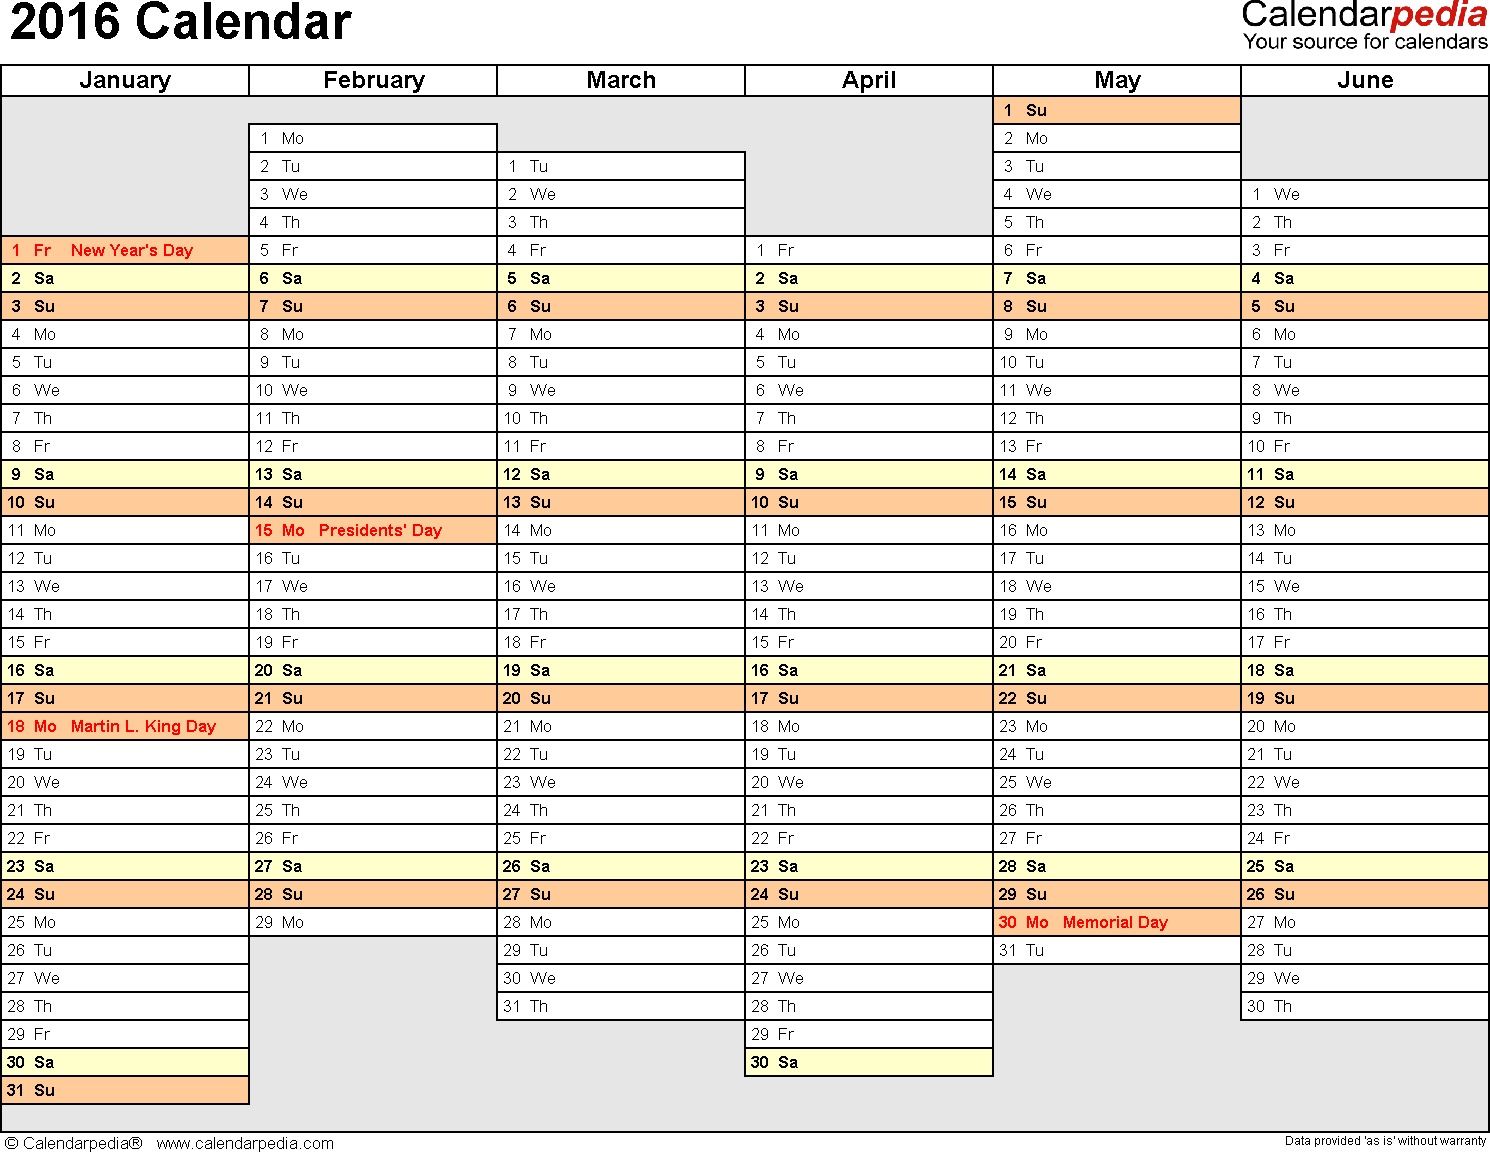 Template 5: 2016 Calendar for PDF, months horizontally, 2 pages, days of the week in line/linear, landscape orientation